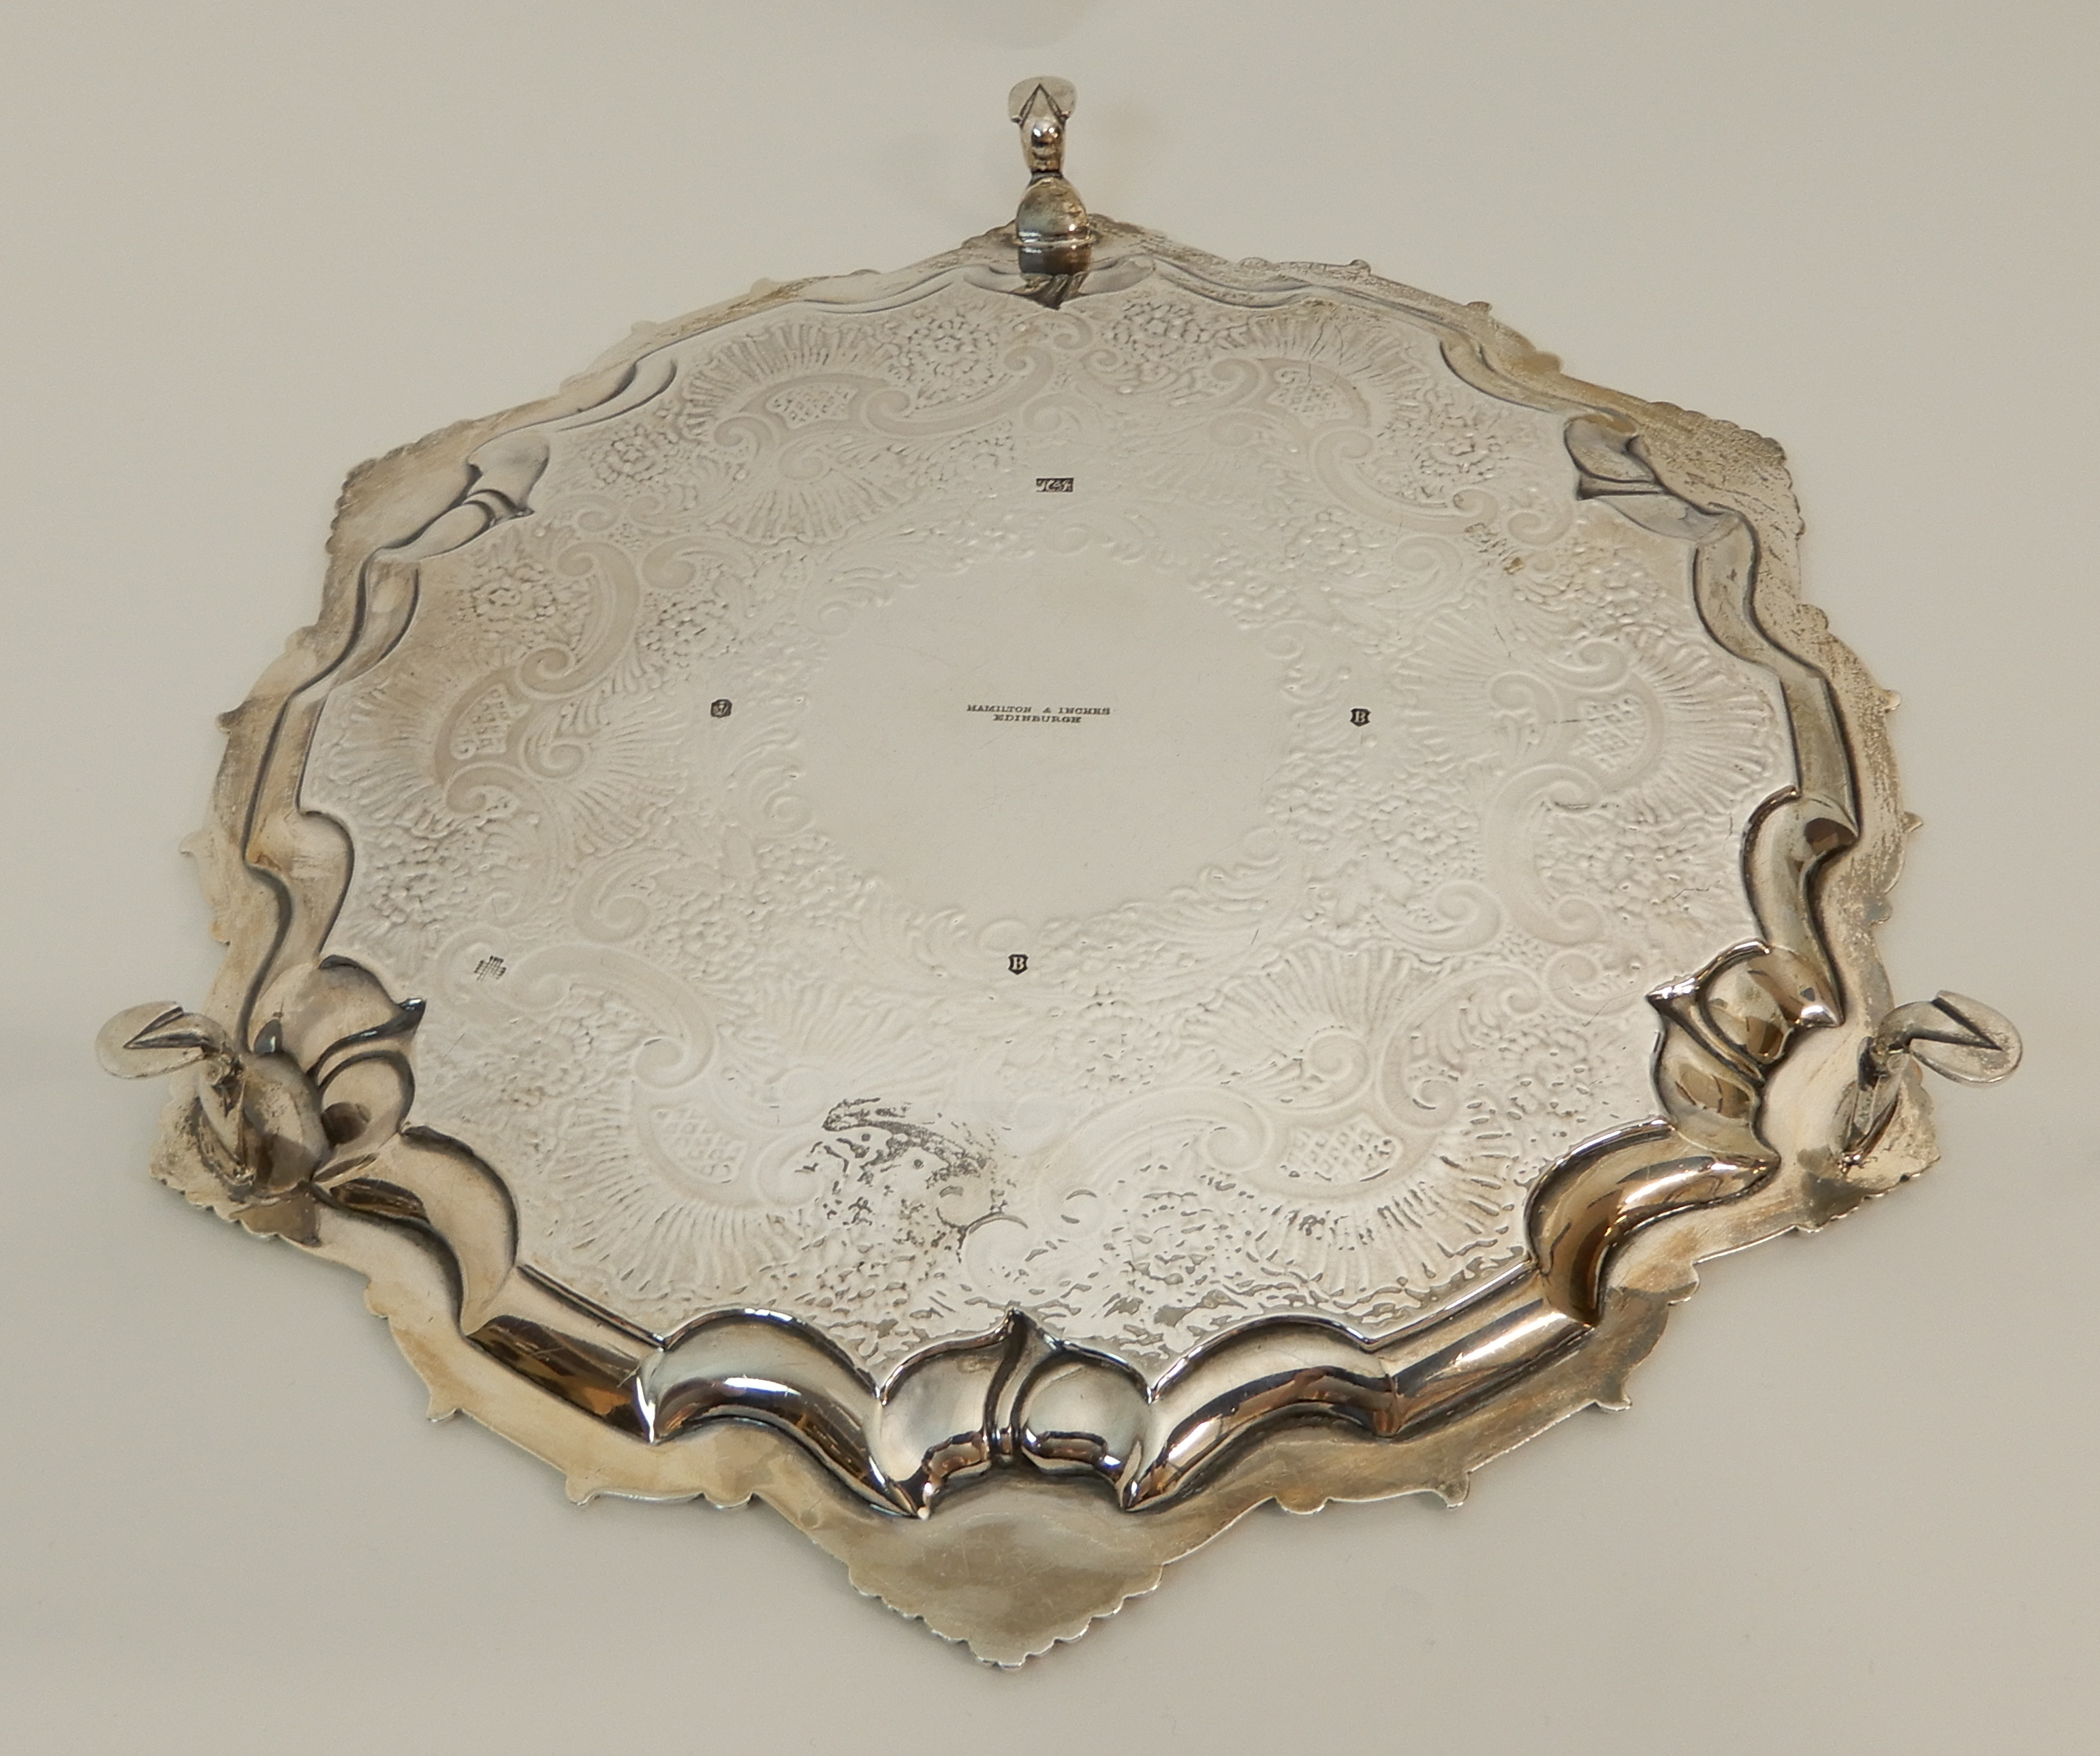 Lot 148 - AN EDWARDIAN SILVER SALVER by Hamilton & Inches, Edinburgh 1907, of circular form with scalloped